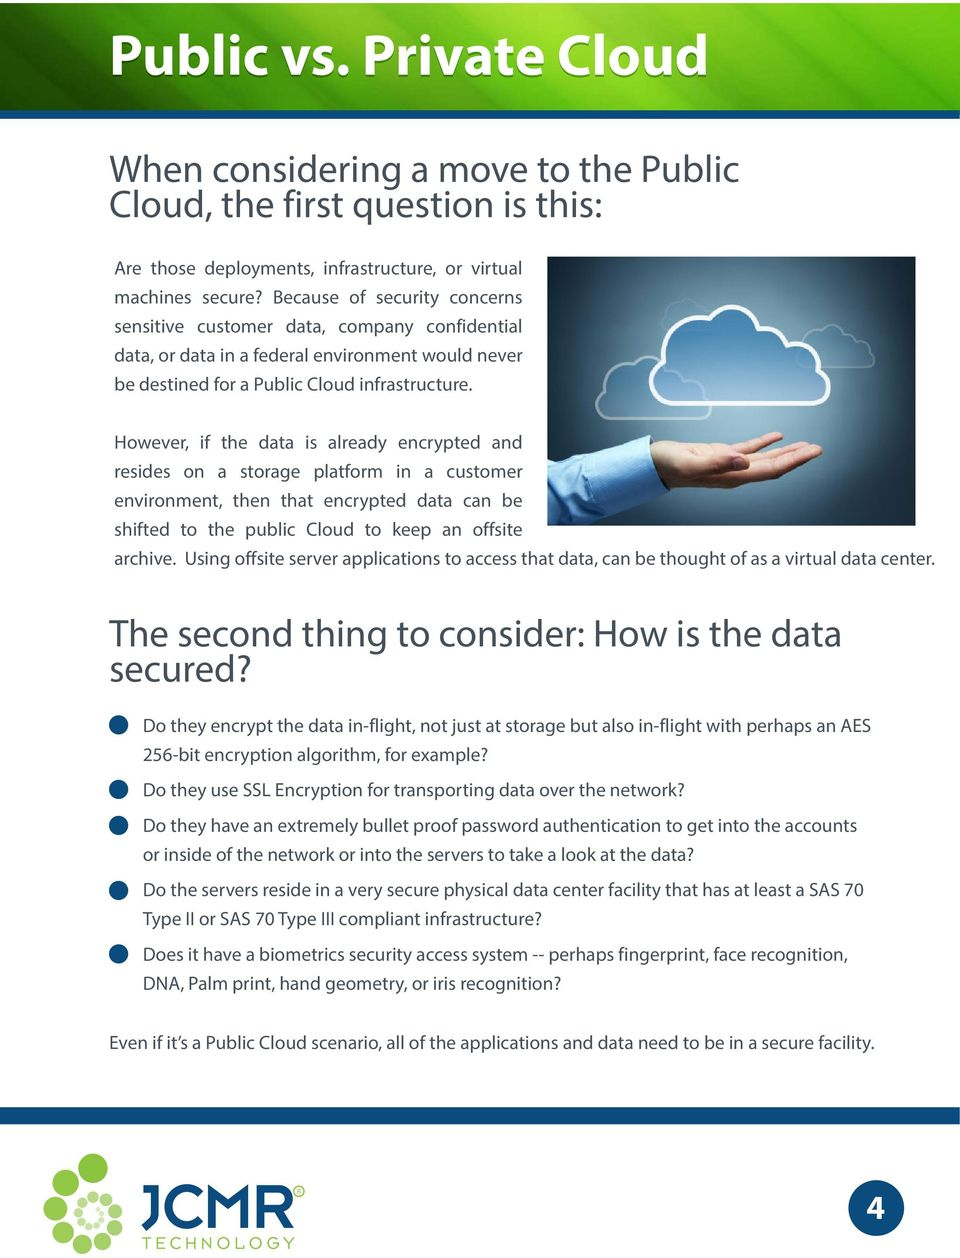 However, if the data is already encrypted and resides on a storage platform in a customer environment, then that encrypted data can be shifted to the public Cloud to keep an offsite archive.